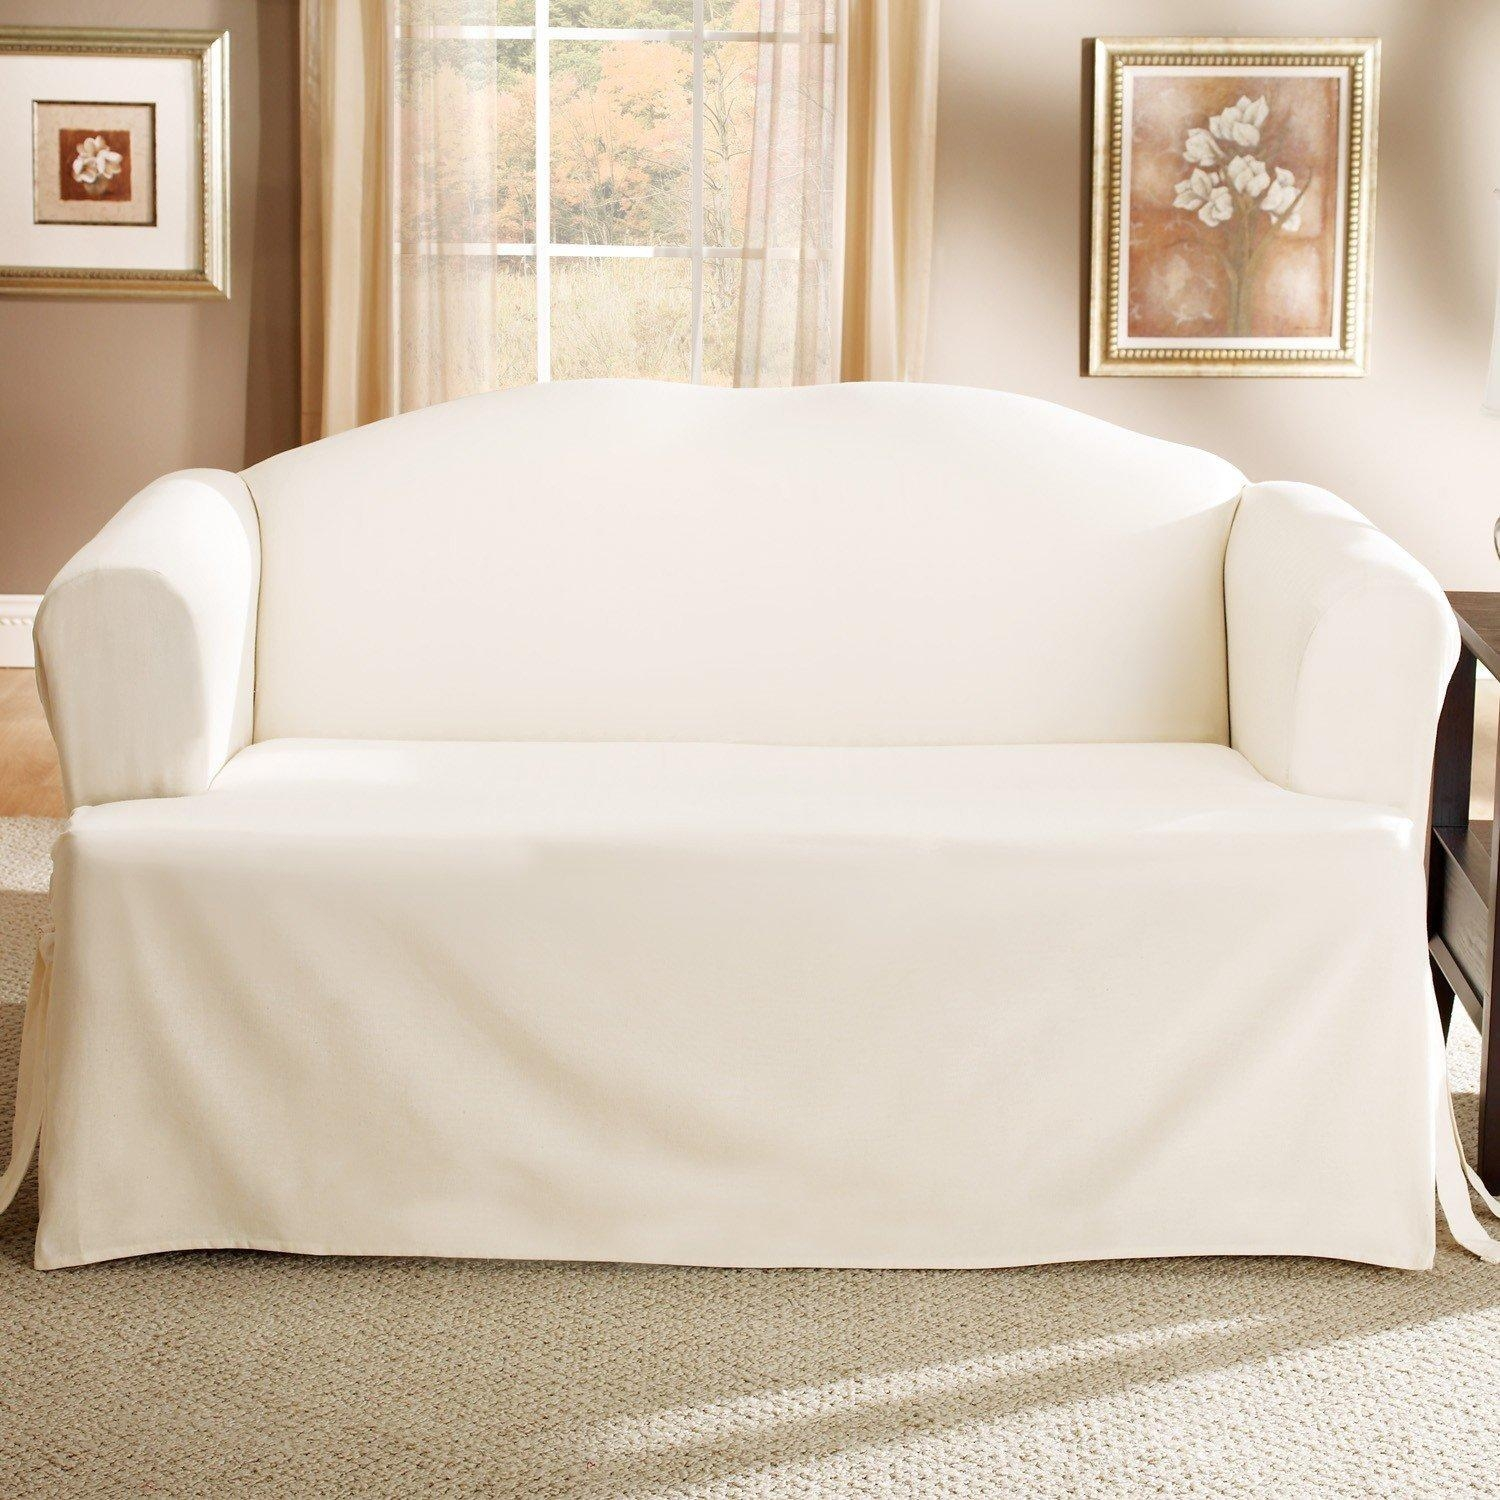 Furniture: Couch And Loveseat Covers | Slipcovers For Sectional Intended For Slip Covers For Love Seats (Image 4 of 20)